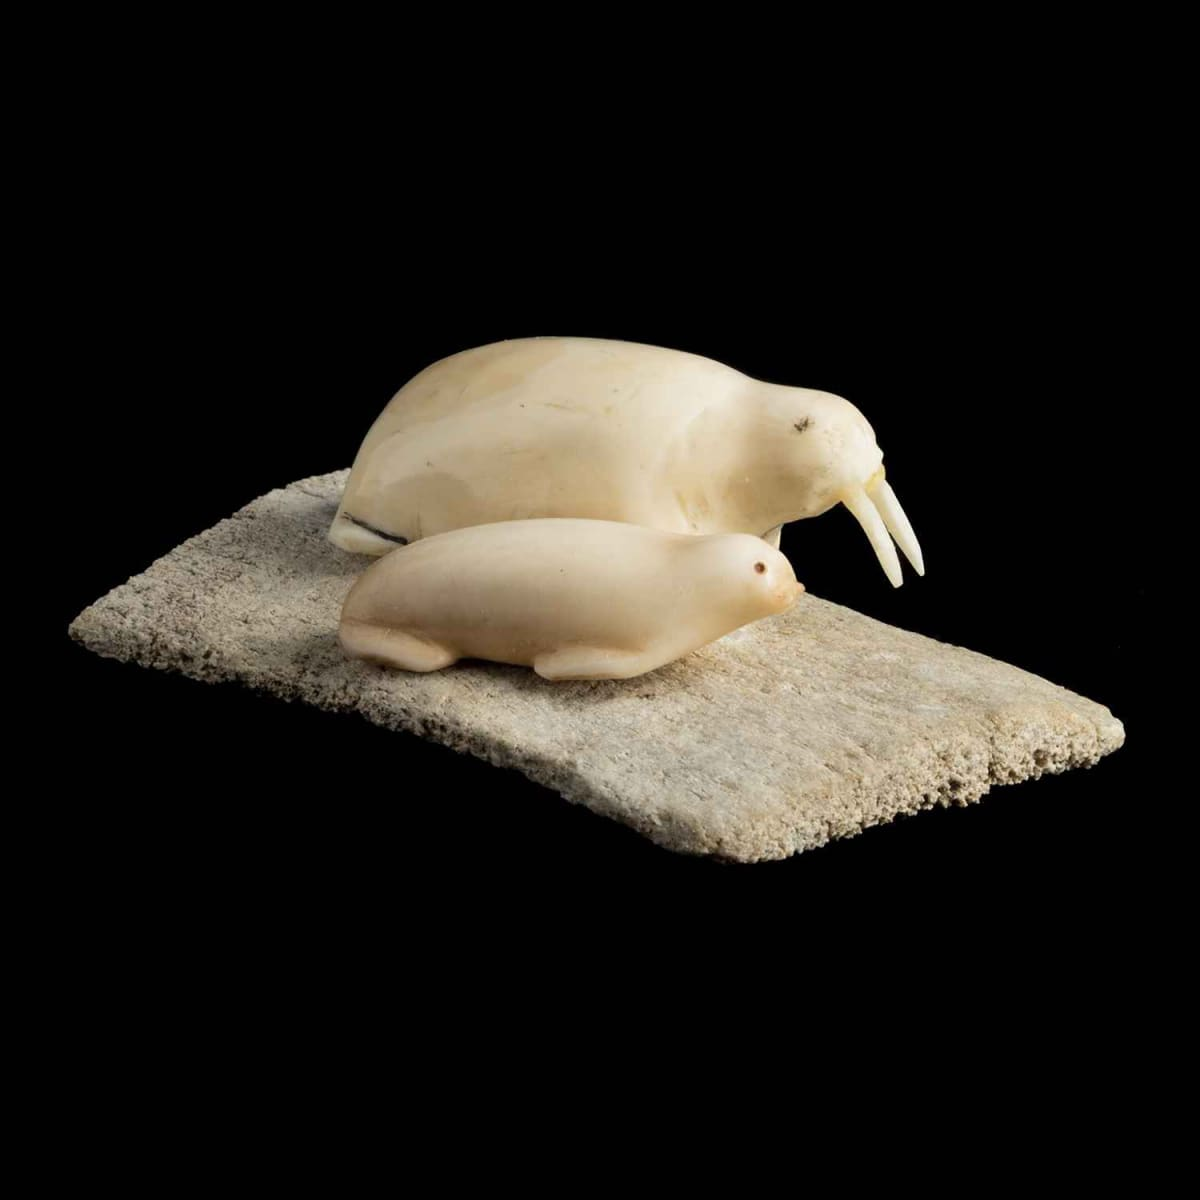 17. UNIDENTIFIED ARTIST, KUGAARUK (PELLY BAY) Walrus and Seal, 1969 SOLD